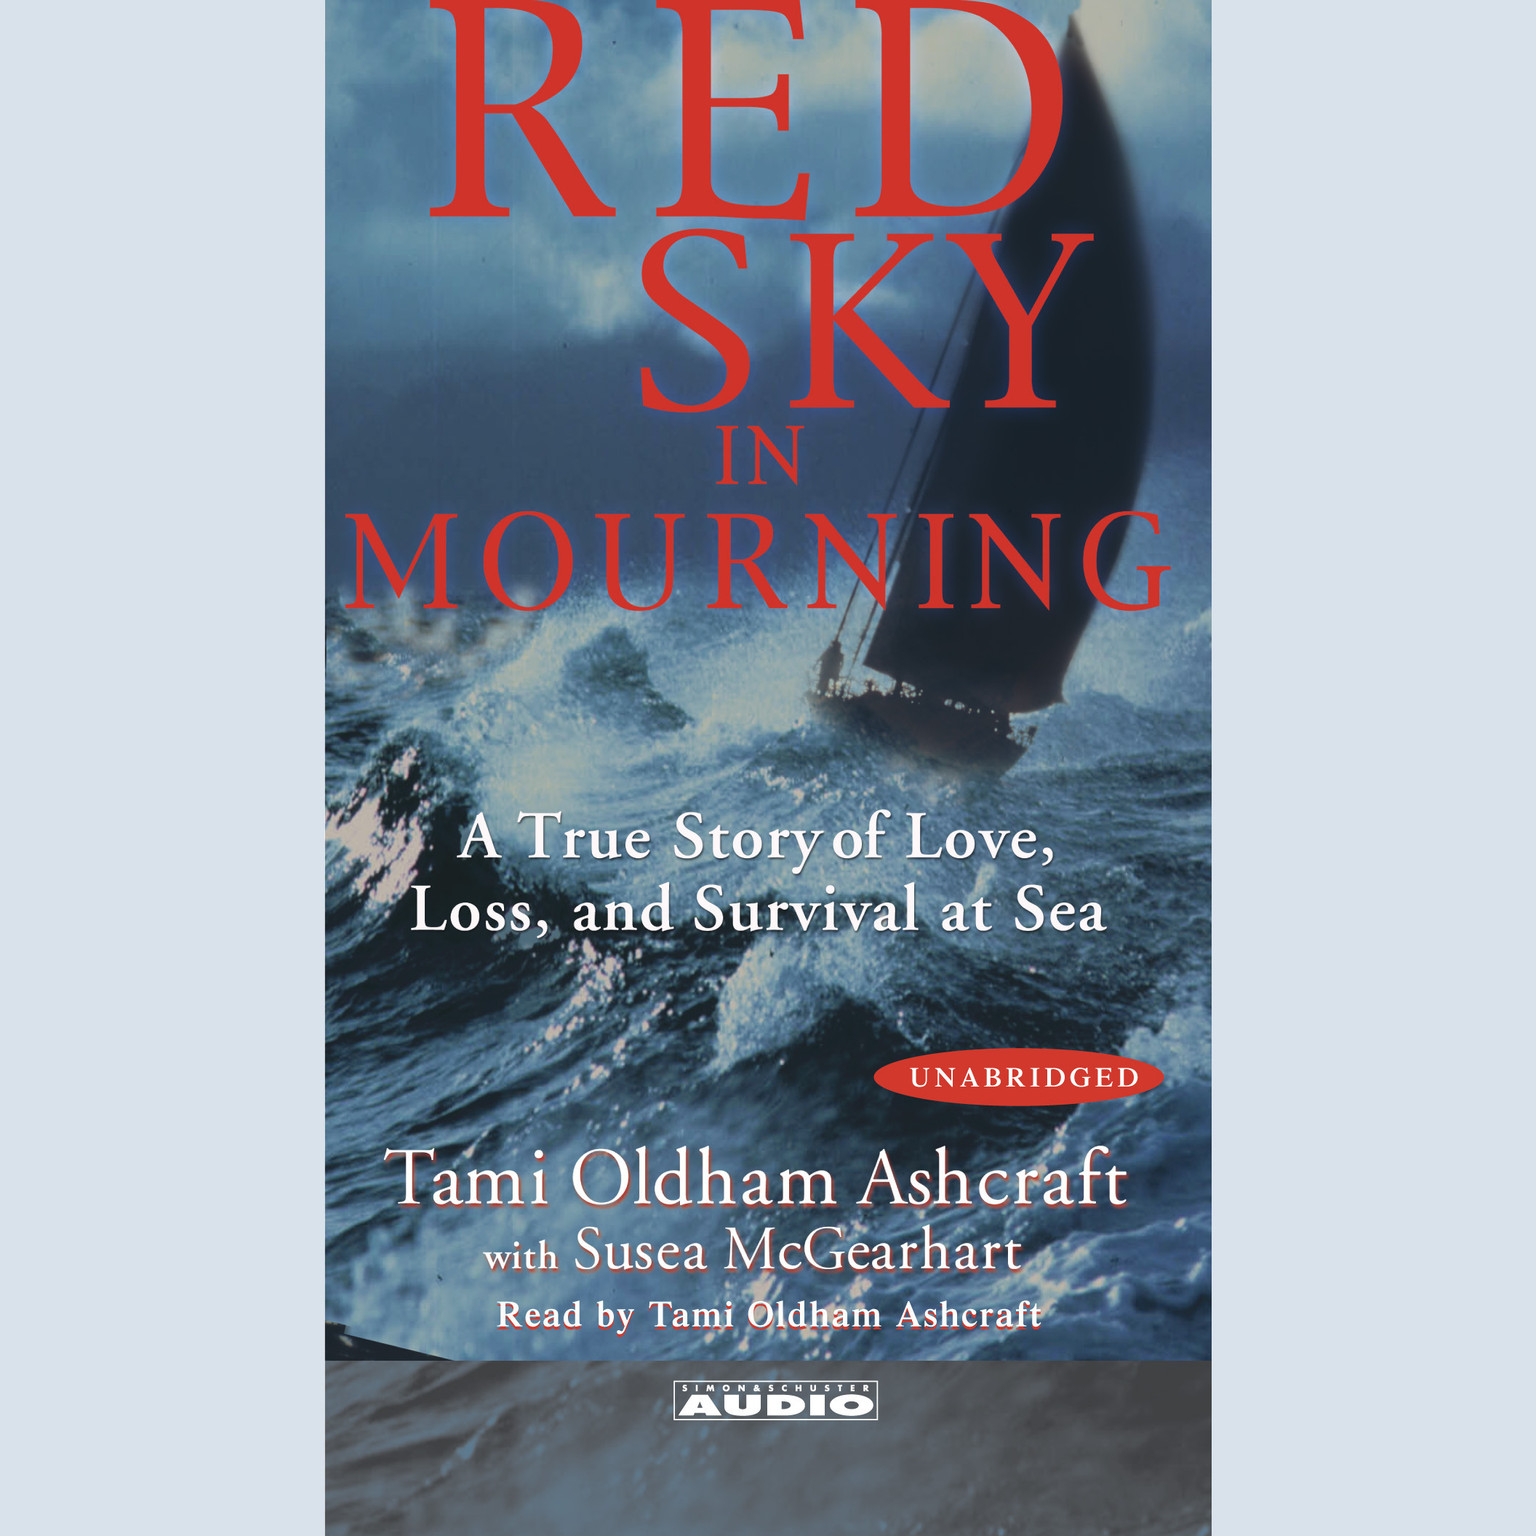 Printable Red Sky In Mourning: The True Story of a Woman's Courage and Survival at Sea Audiobook Cover Art